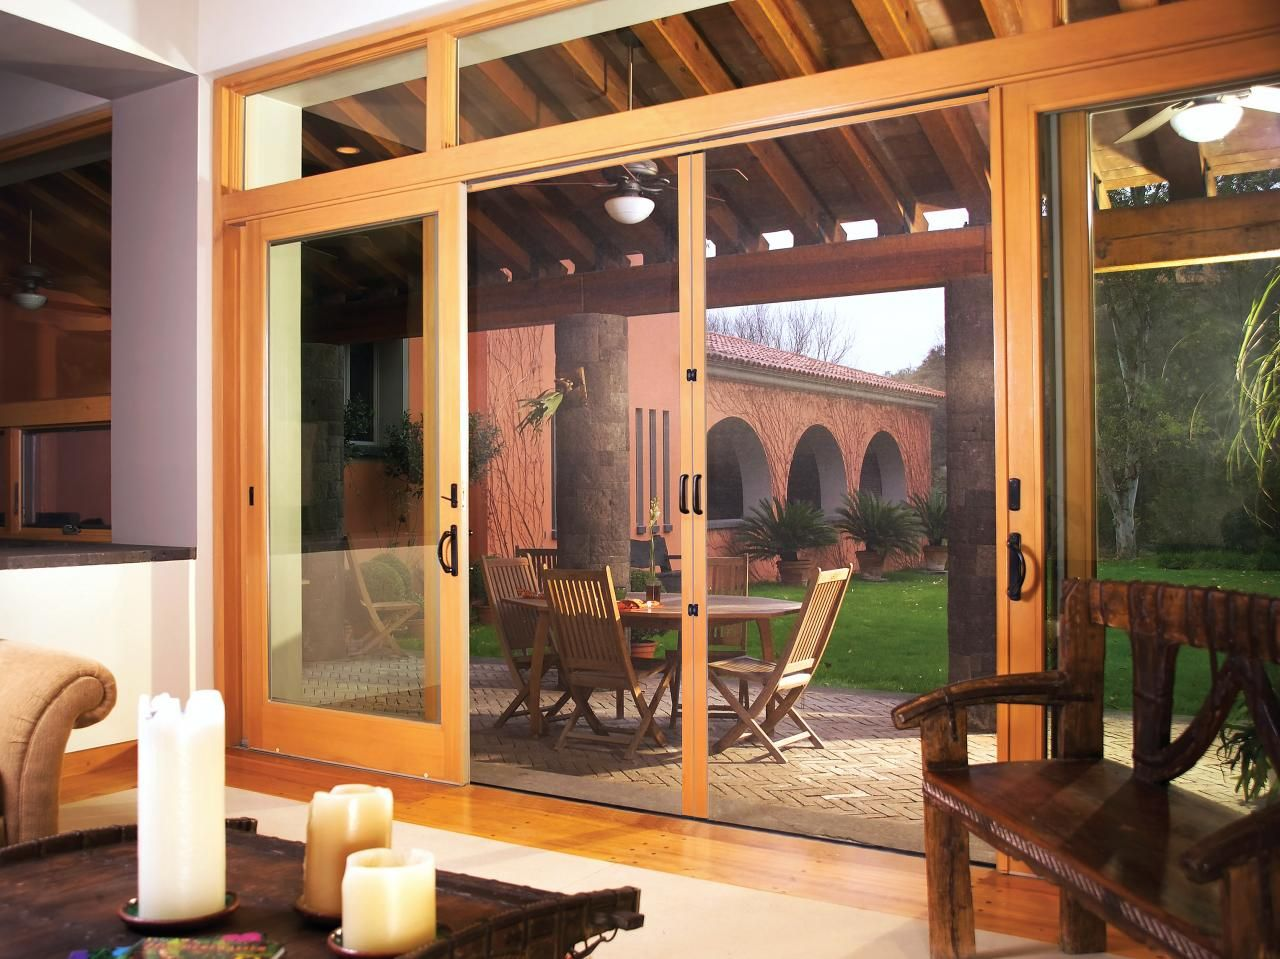 Center Opening Sliding Glass Patio Doors With Screen   Google Search